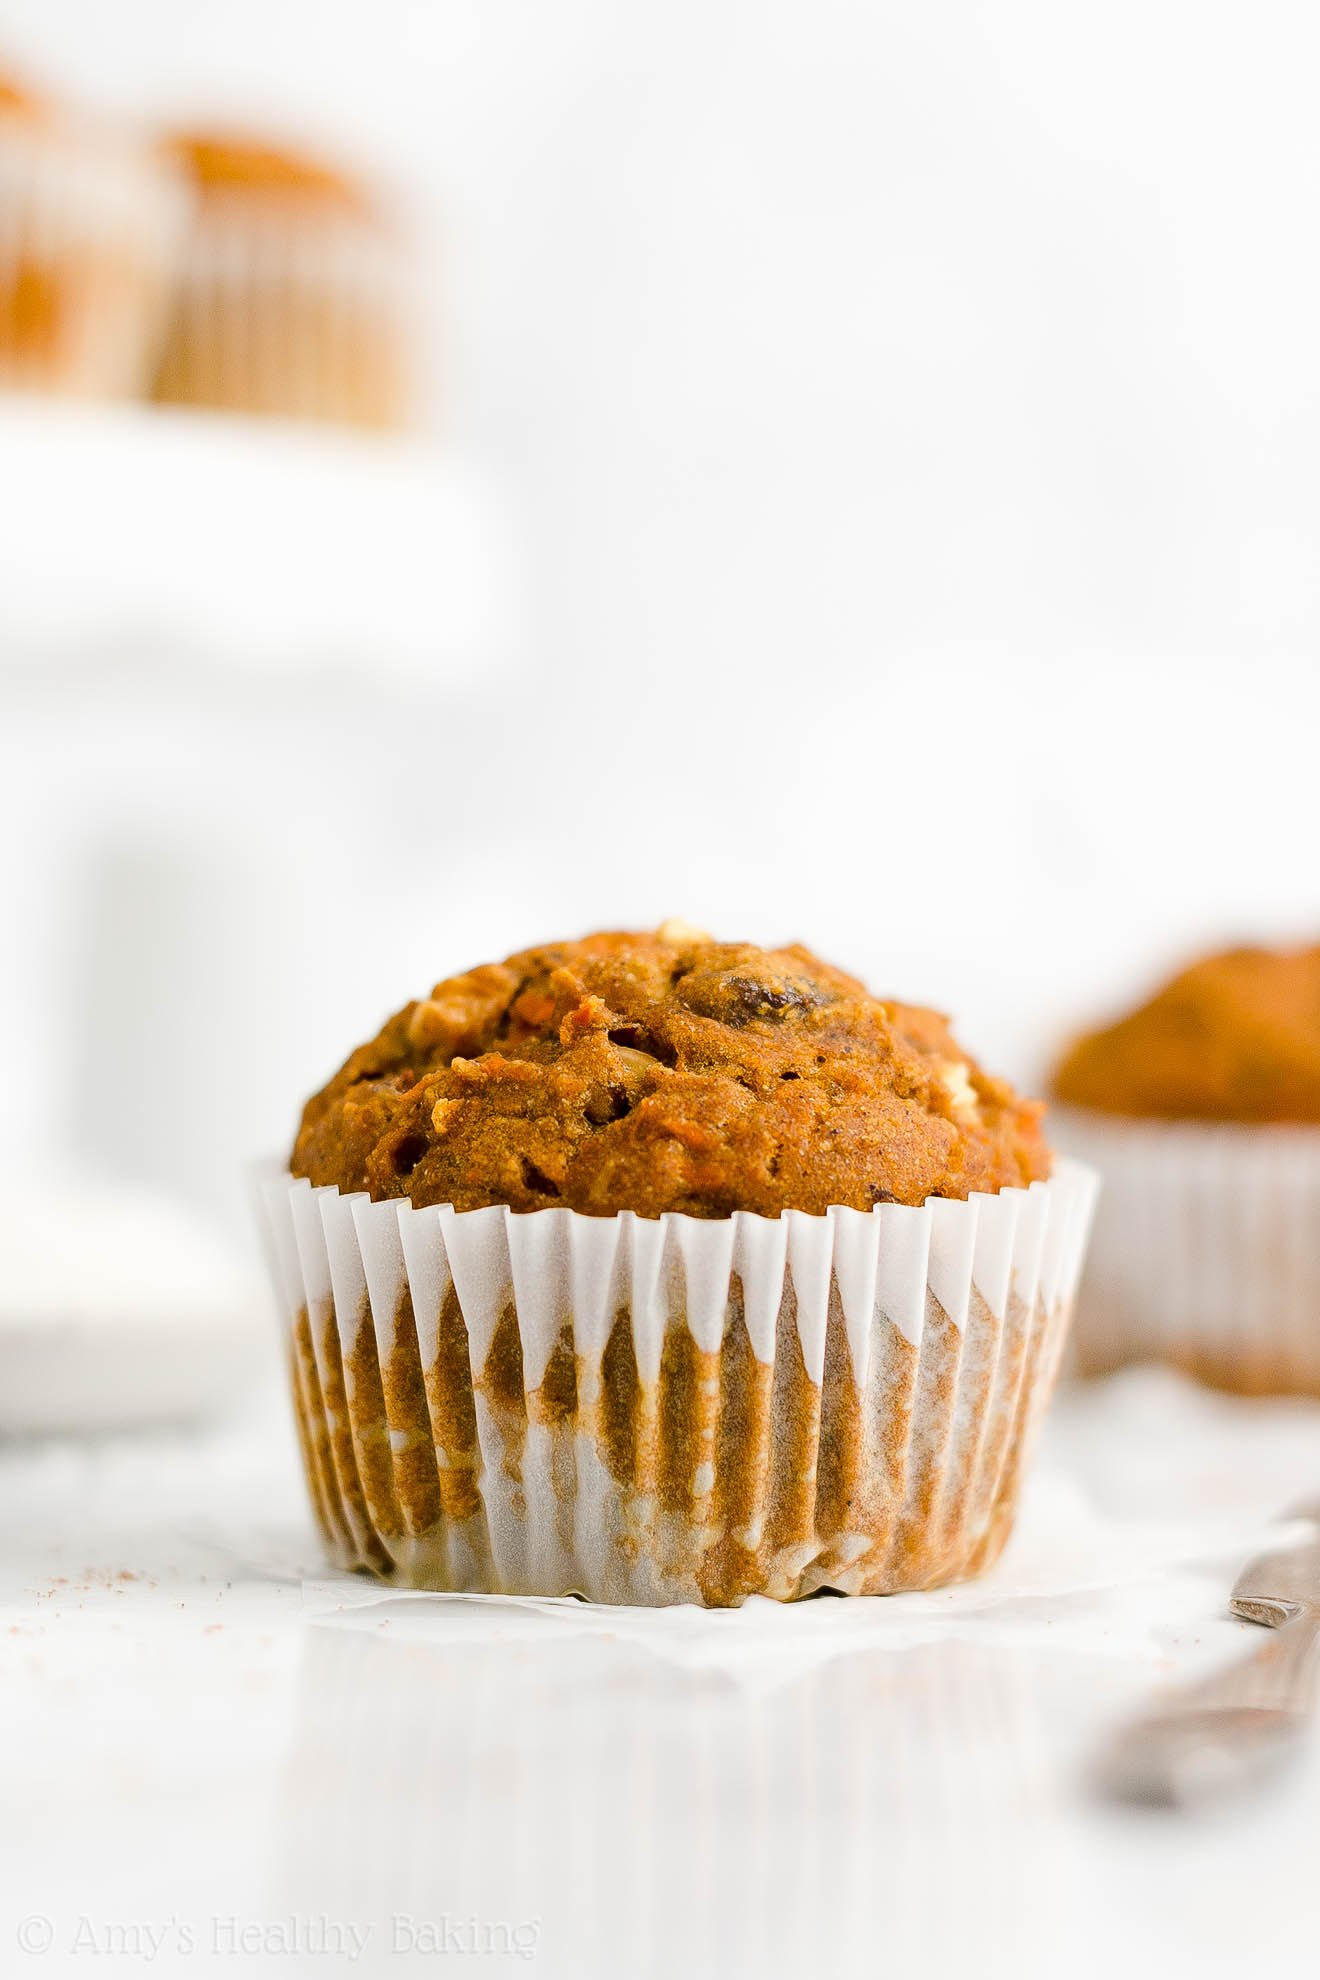 Easy Healthy Gluten Free No Sugar Low Calorie Pumpkin Morning Glory Muffins